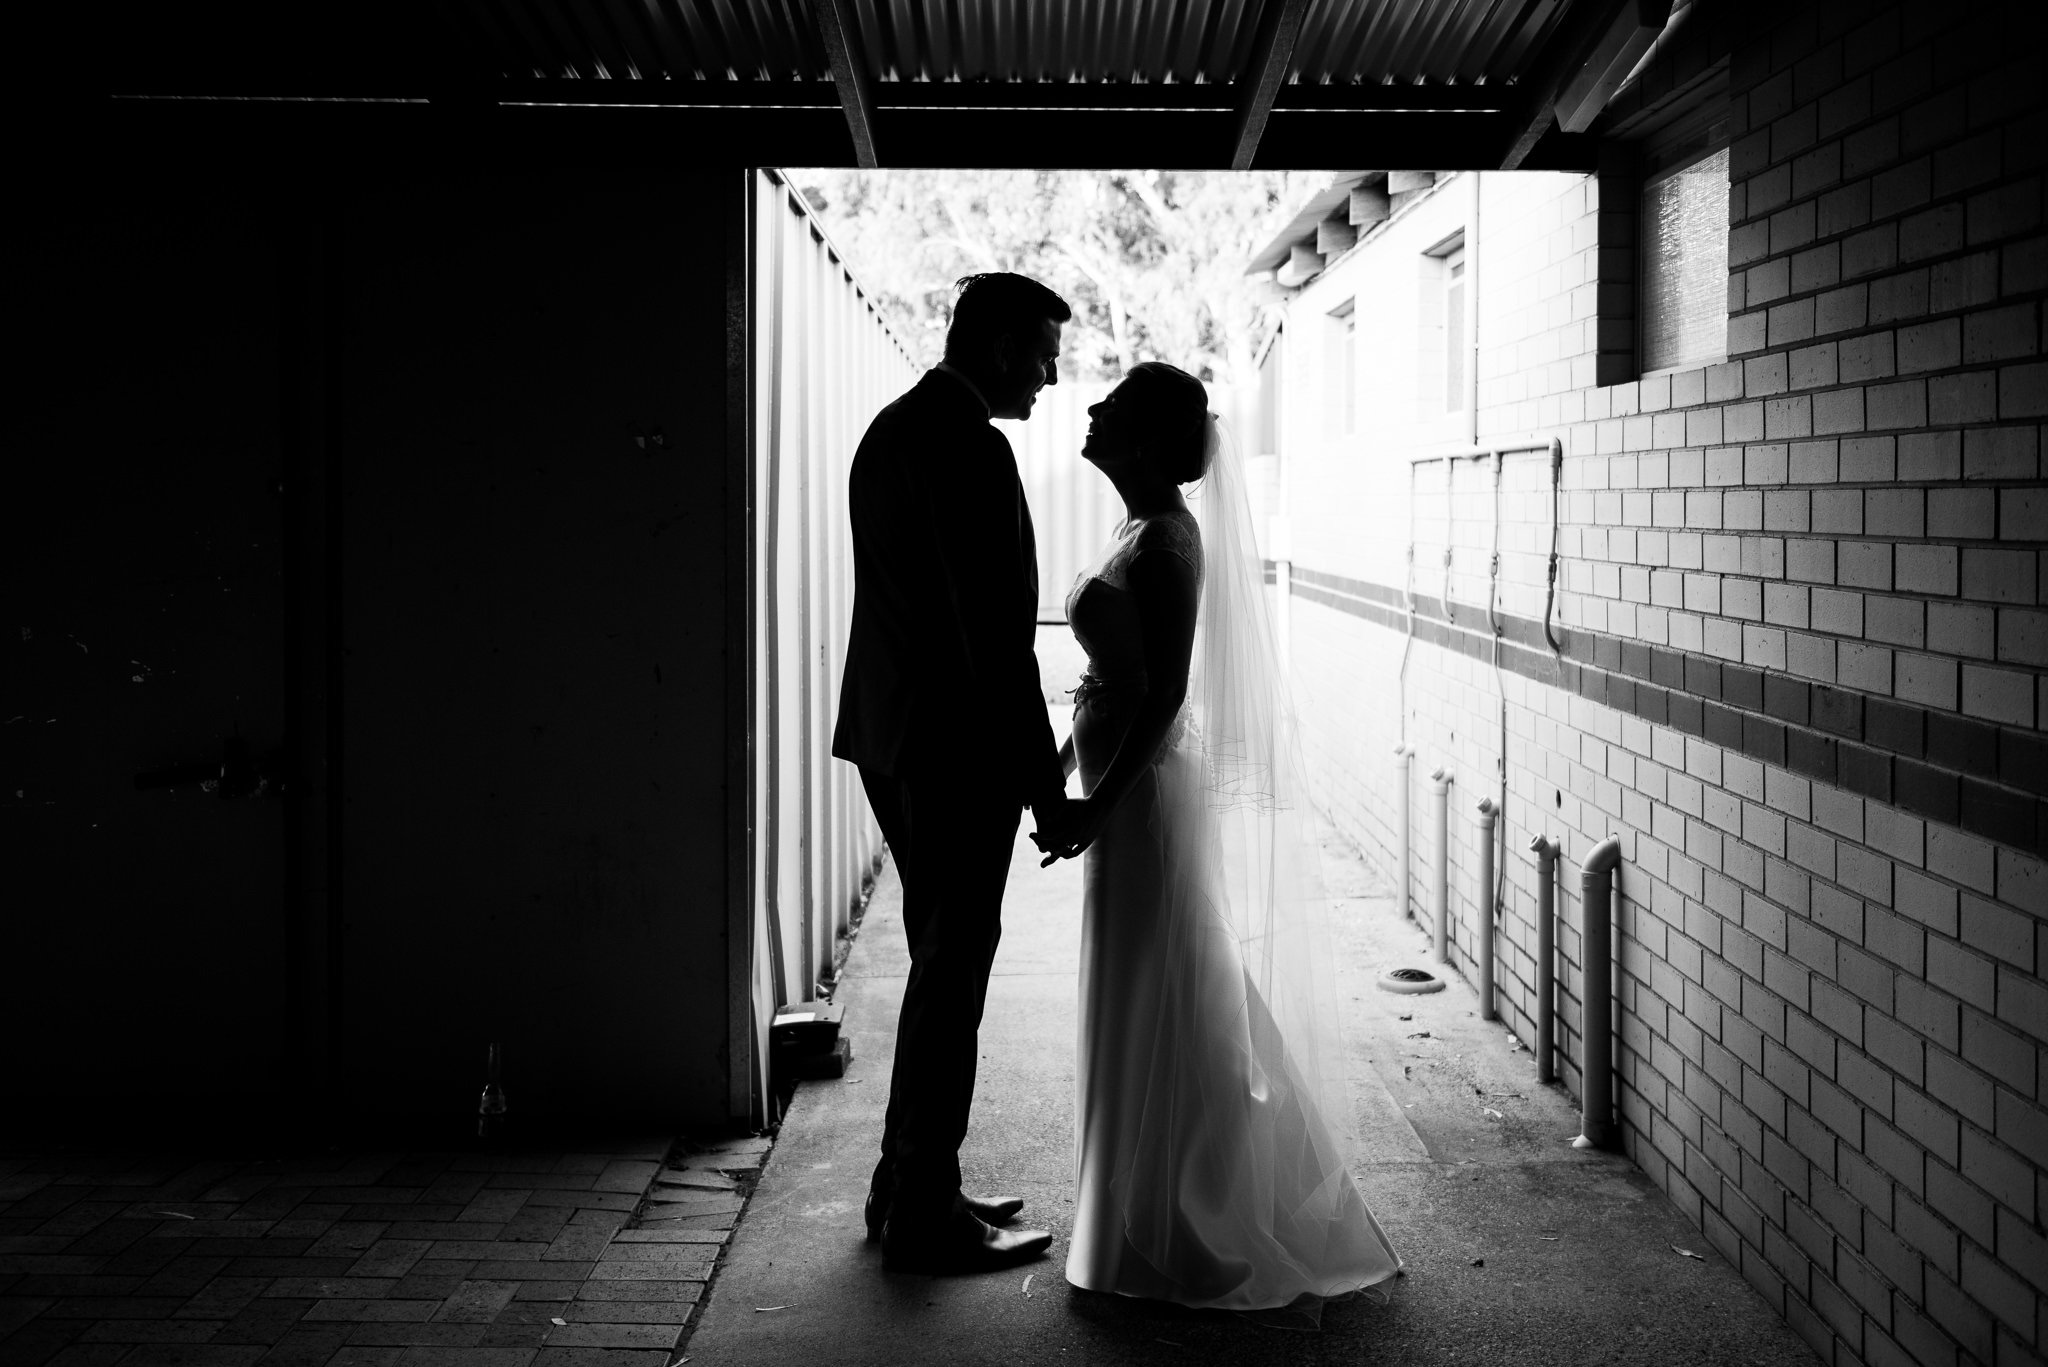 bride and groom urban silhouette